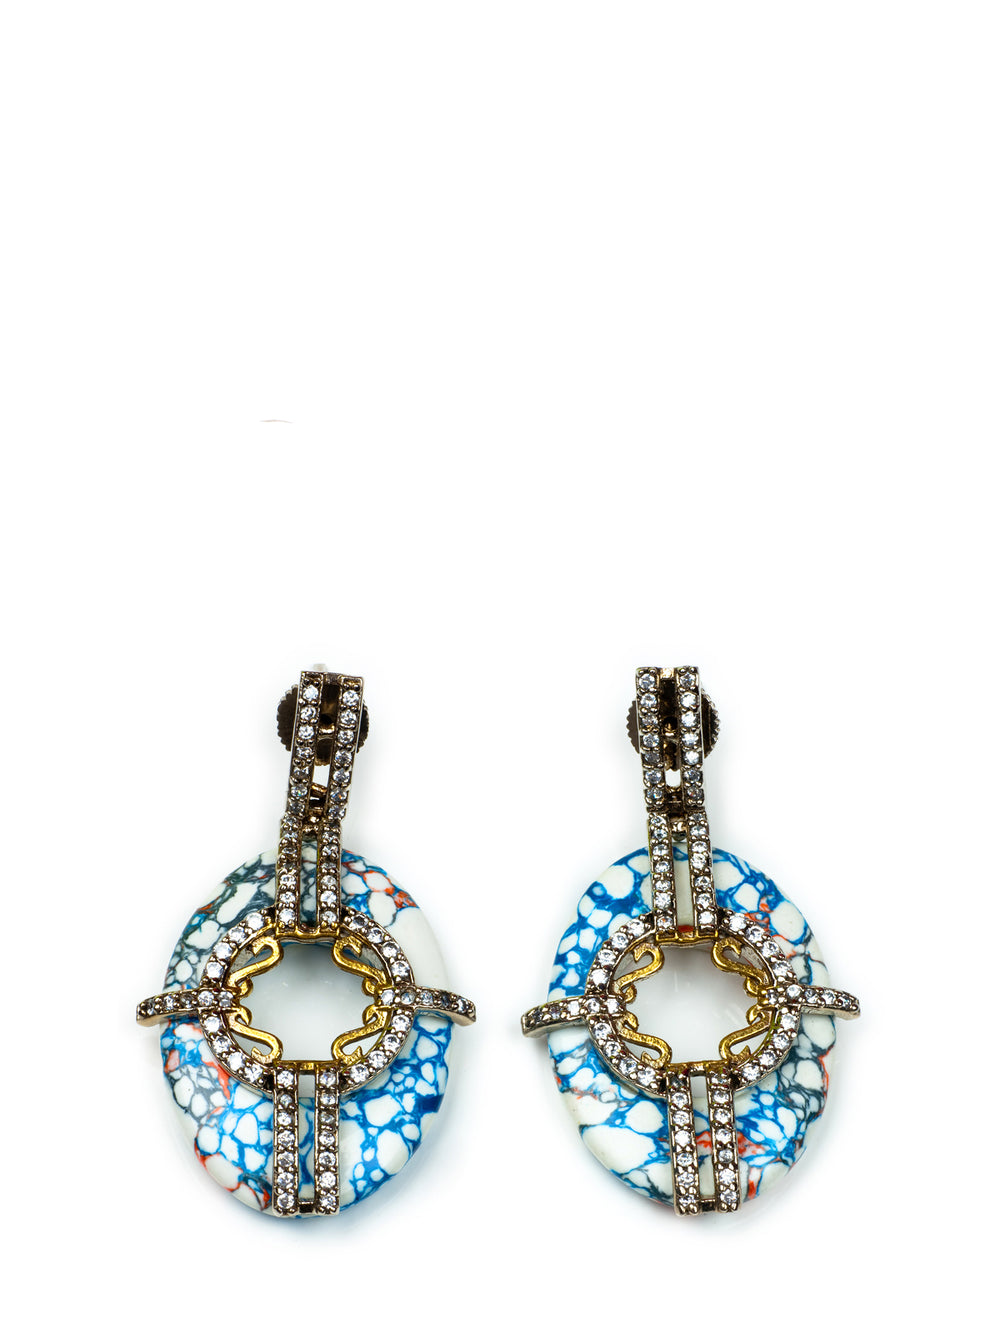 Multi Color Stone Earring with Blue base, KOUKLA - elilhaam.com